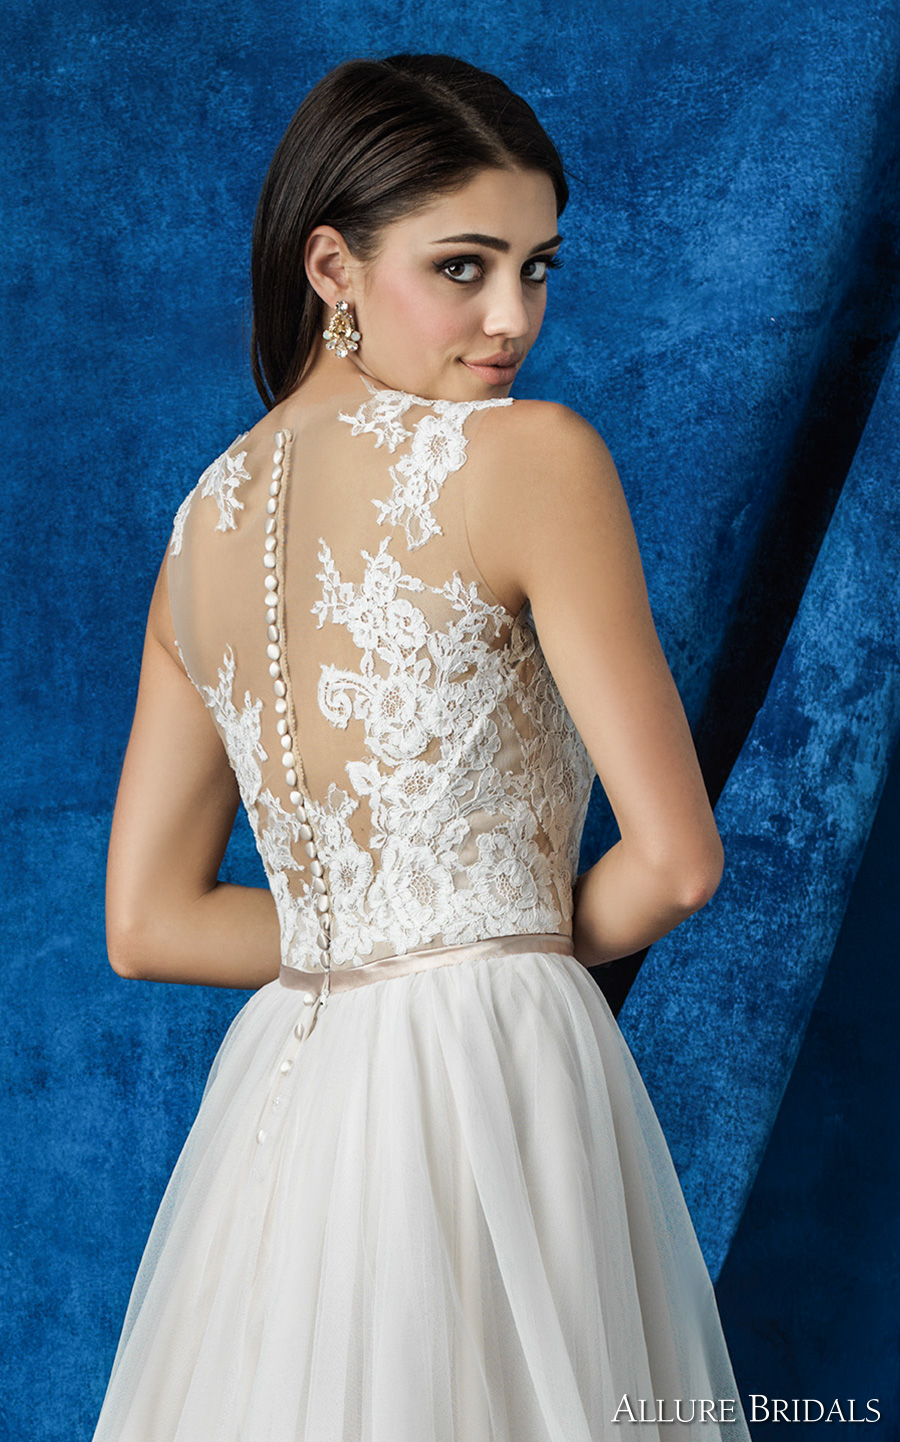 allure bridals 2016 mix match sleeveless illusion round neck plunging v neck lace bodice romantic tulle skirt a line wedding dress illusion back chapel train (a2004 top a2010 skirt) zbv